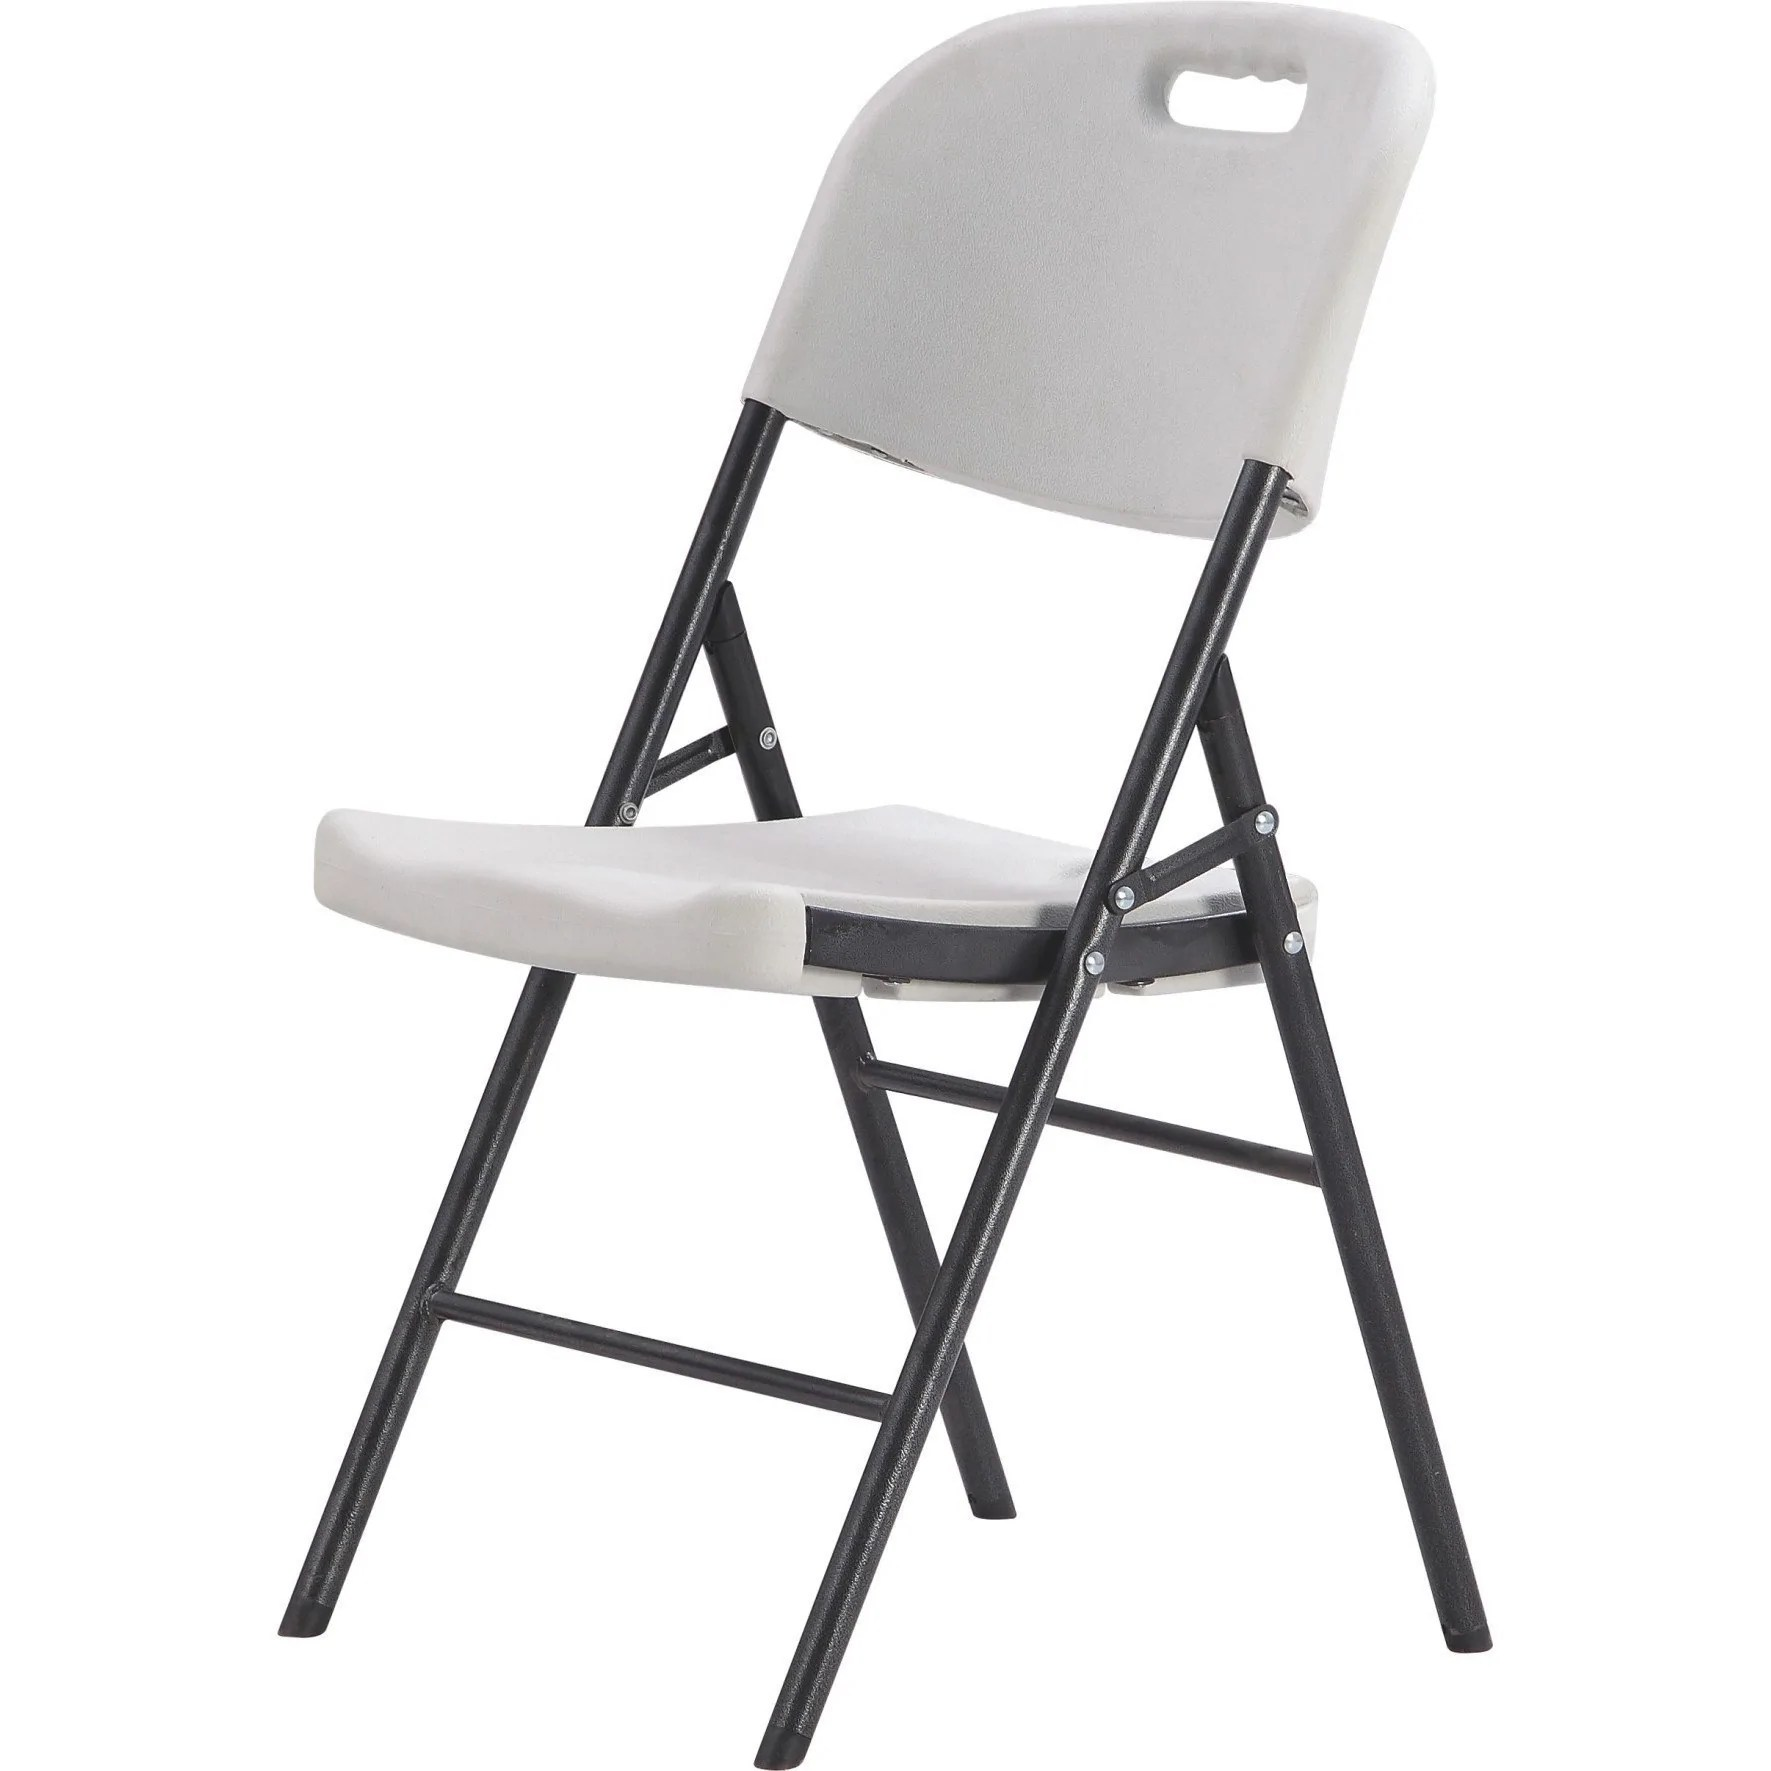 Bjs Folding Chairs Y53 Hdpe Plastic Folding Chair Suchprice Singapore